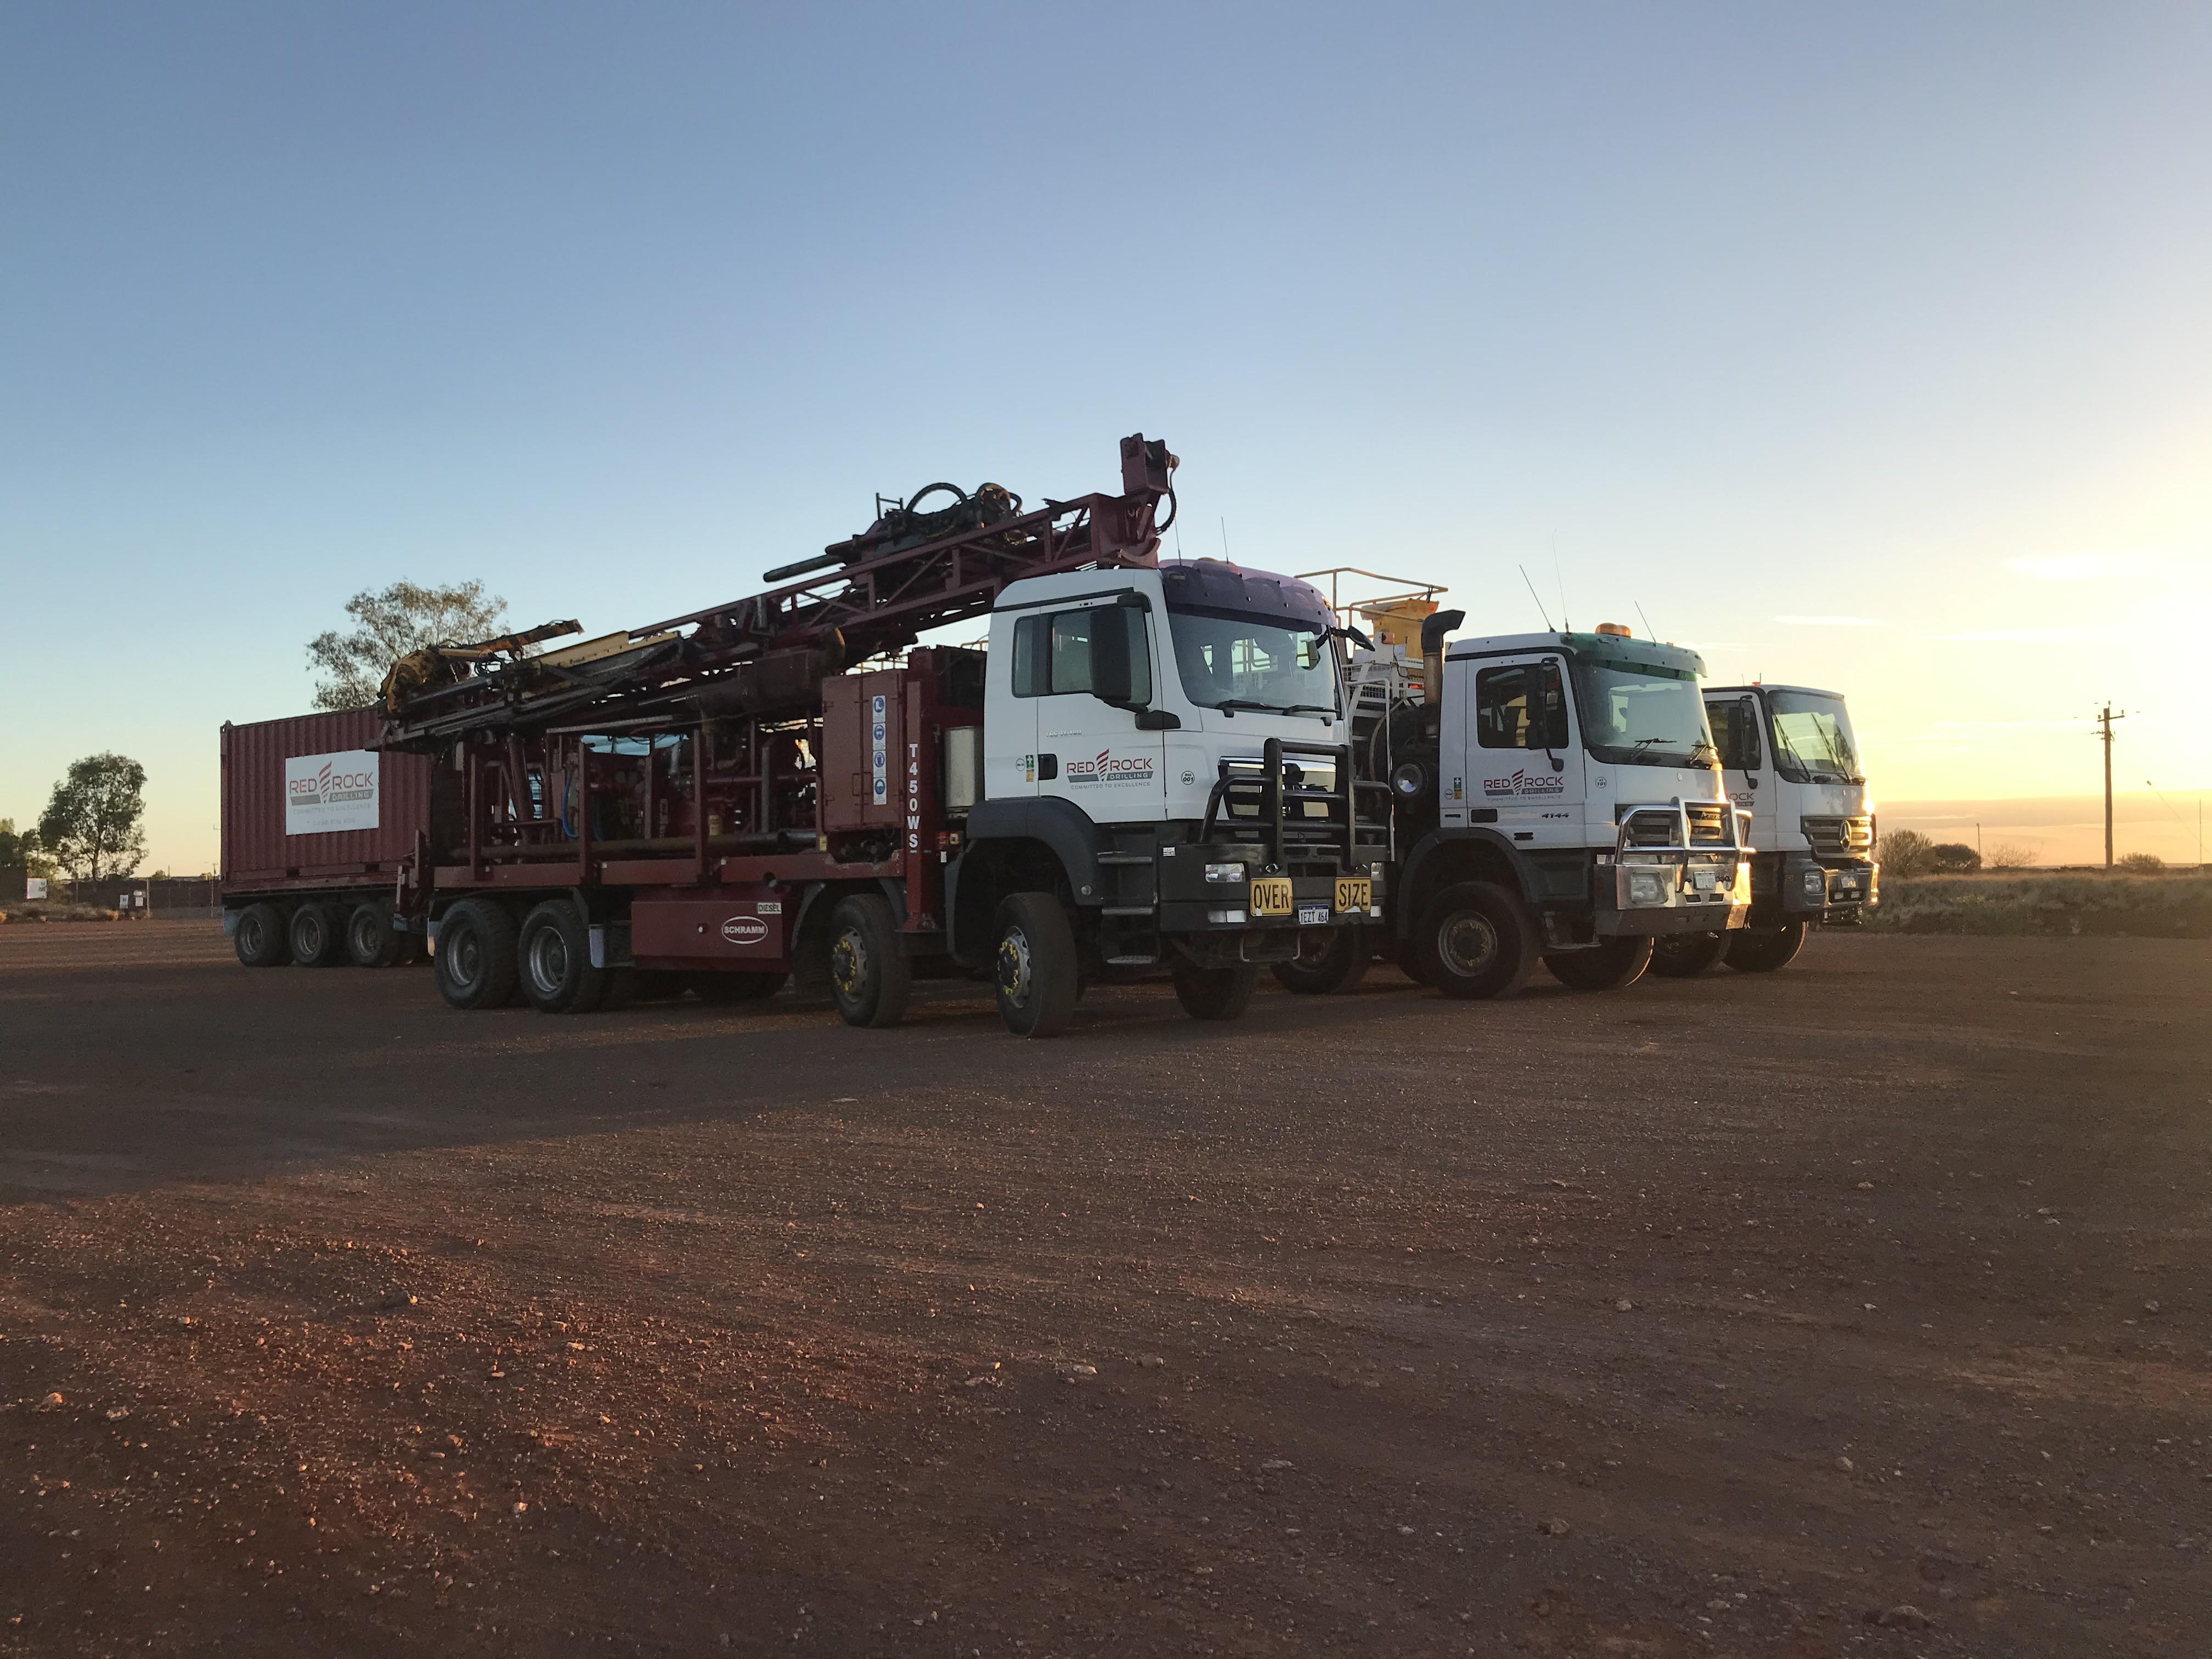 On the move, mobilizing from Kalgoorlie to Barwidgee Station east of Wiluna in WA